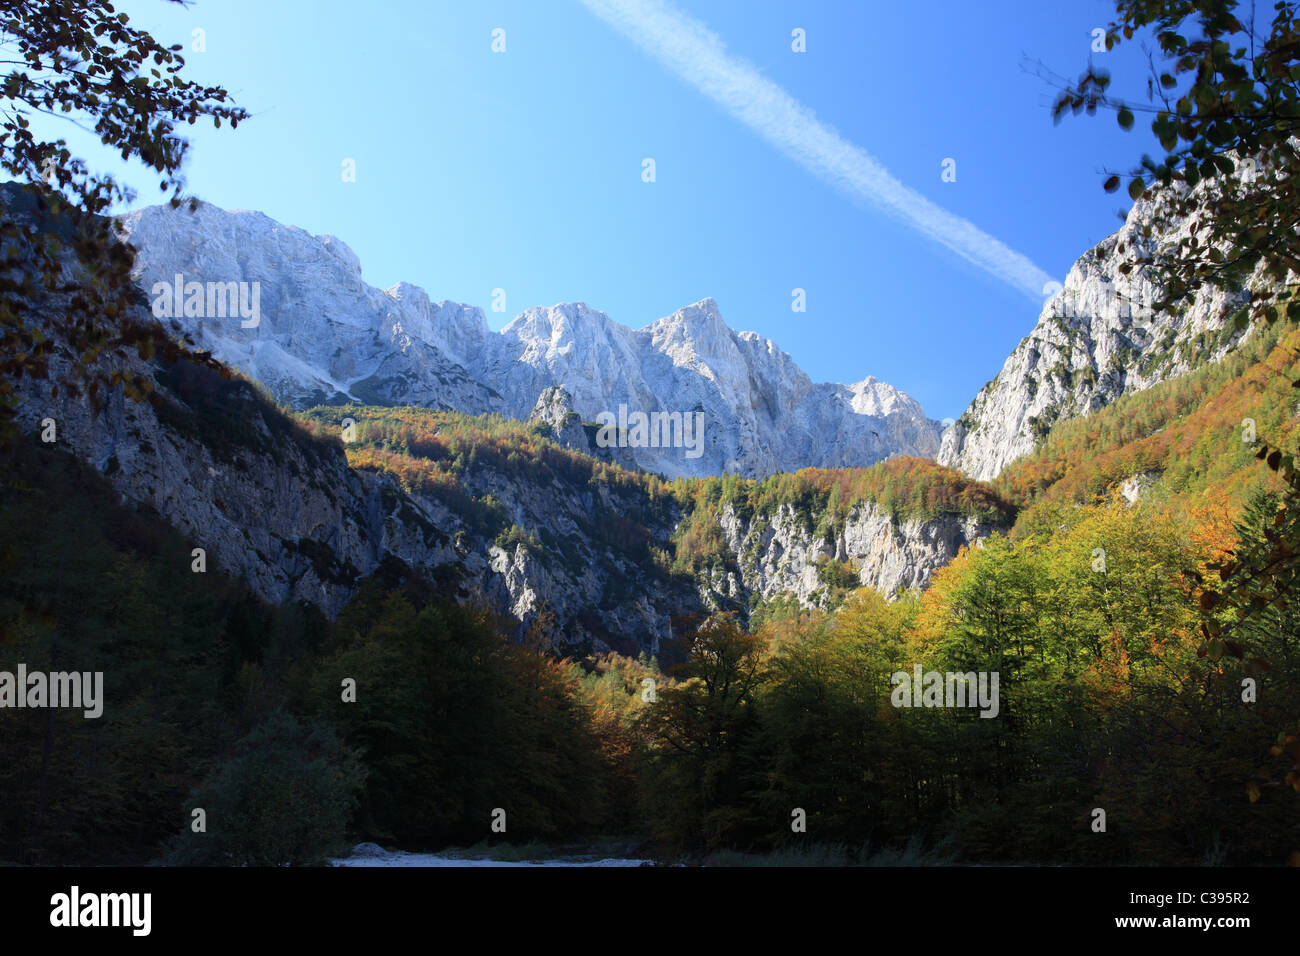 Beautiful Alps and untouched wilderness in West Slovenia, Europe. - Stock Image